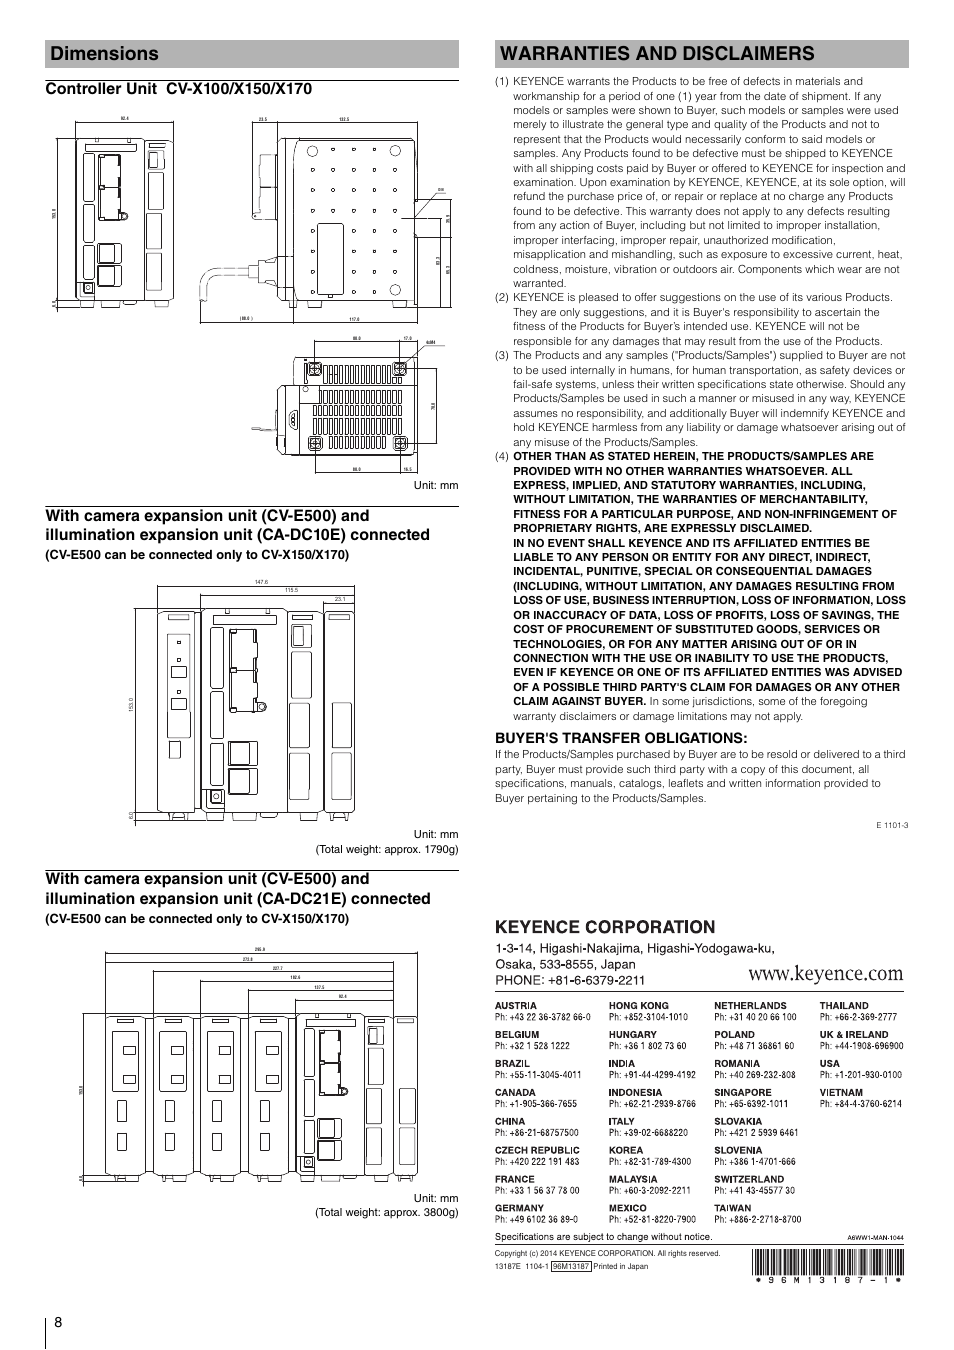 Dimensions, Controller unit cv-x100/x150/x170, Warranties